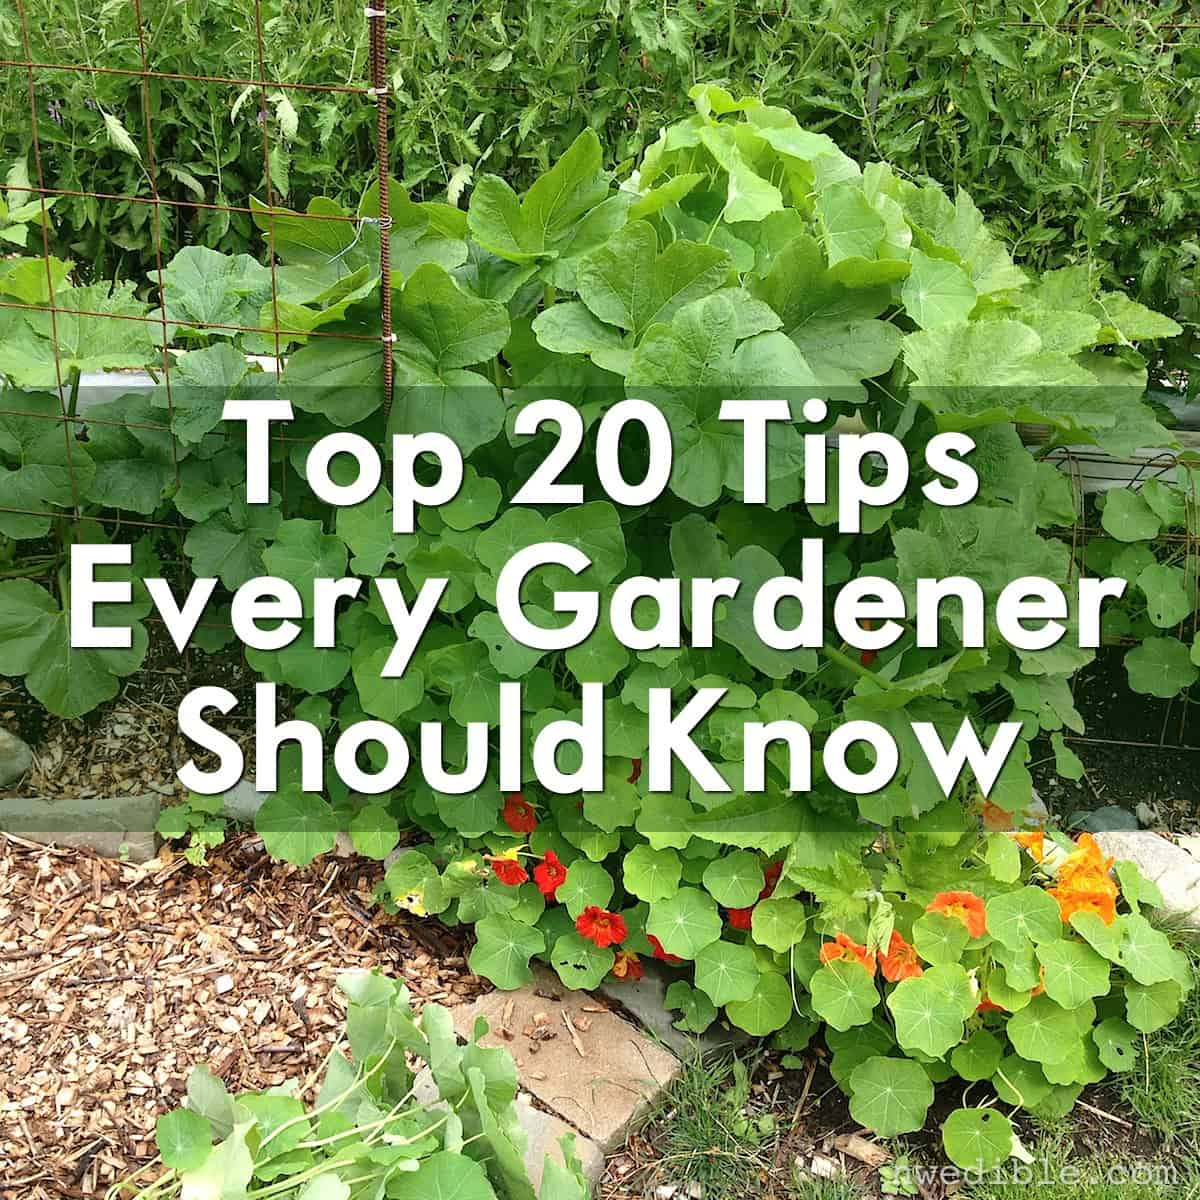 Top 20 tips every gardener should know northwest edible life for Gardening tips